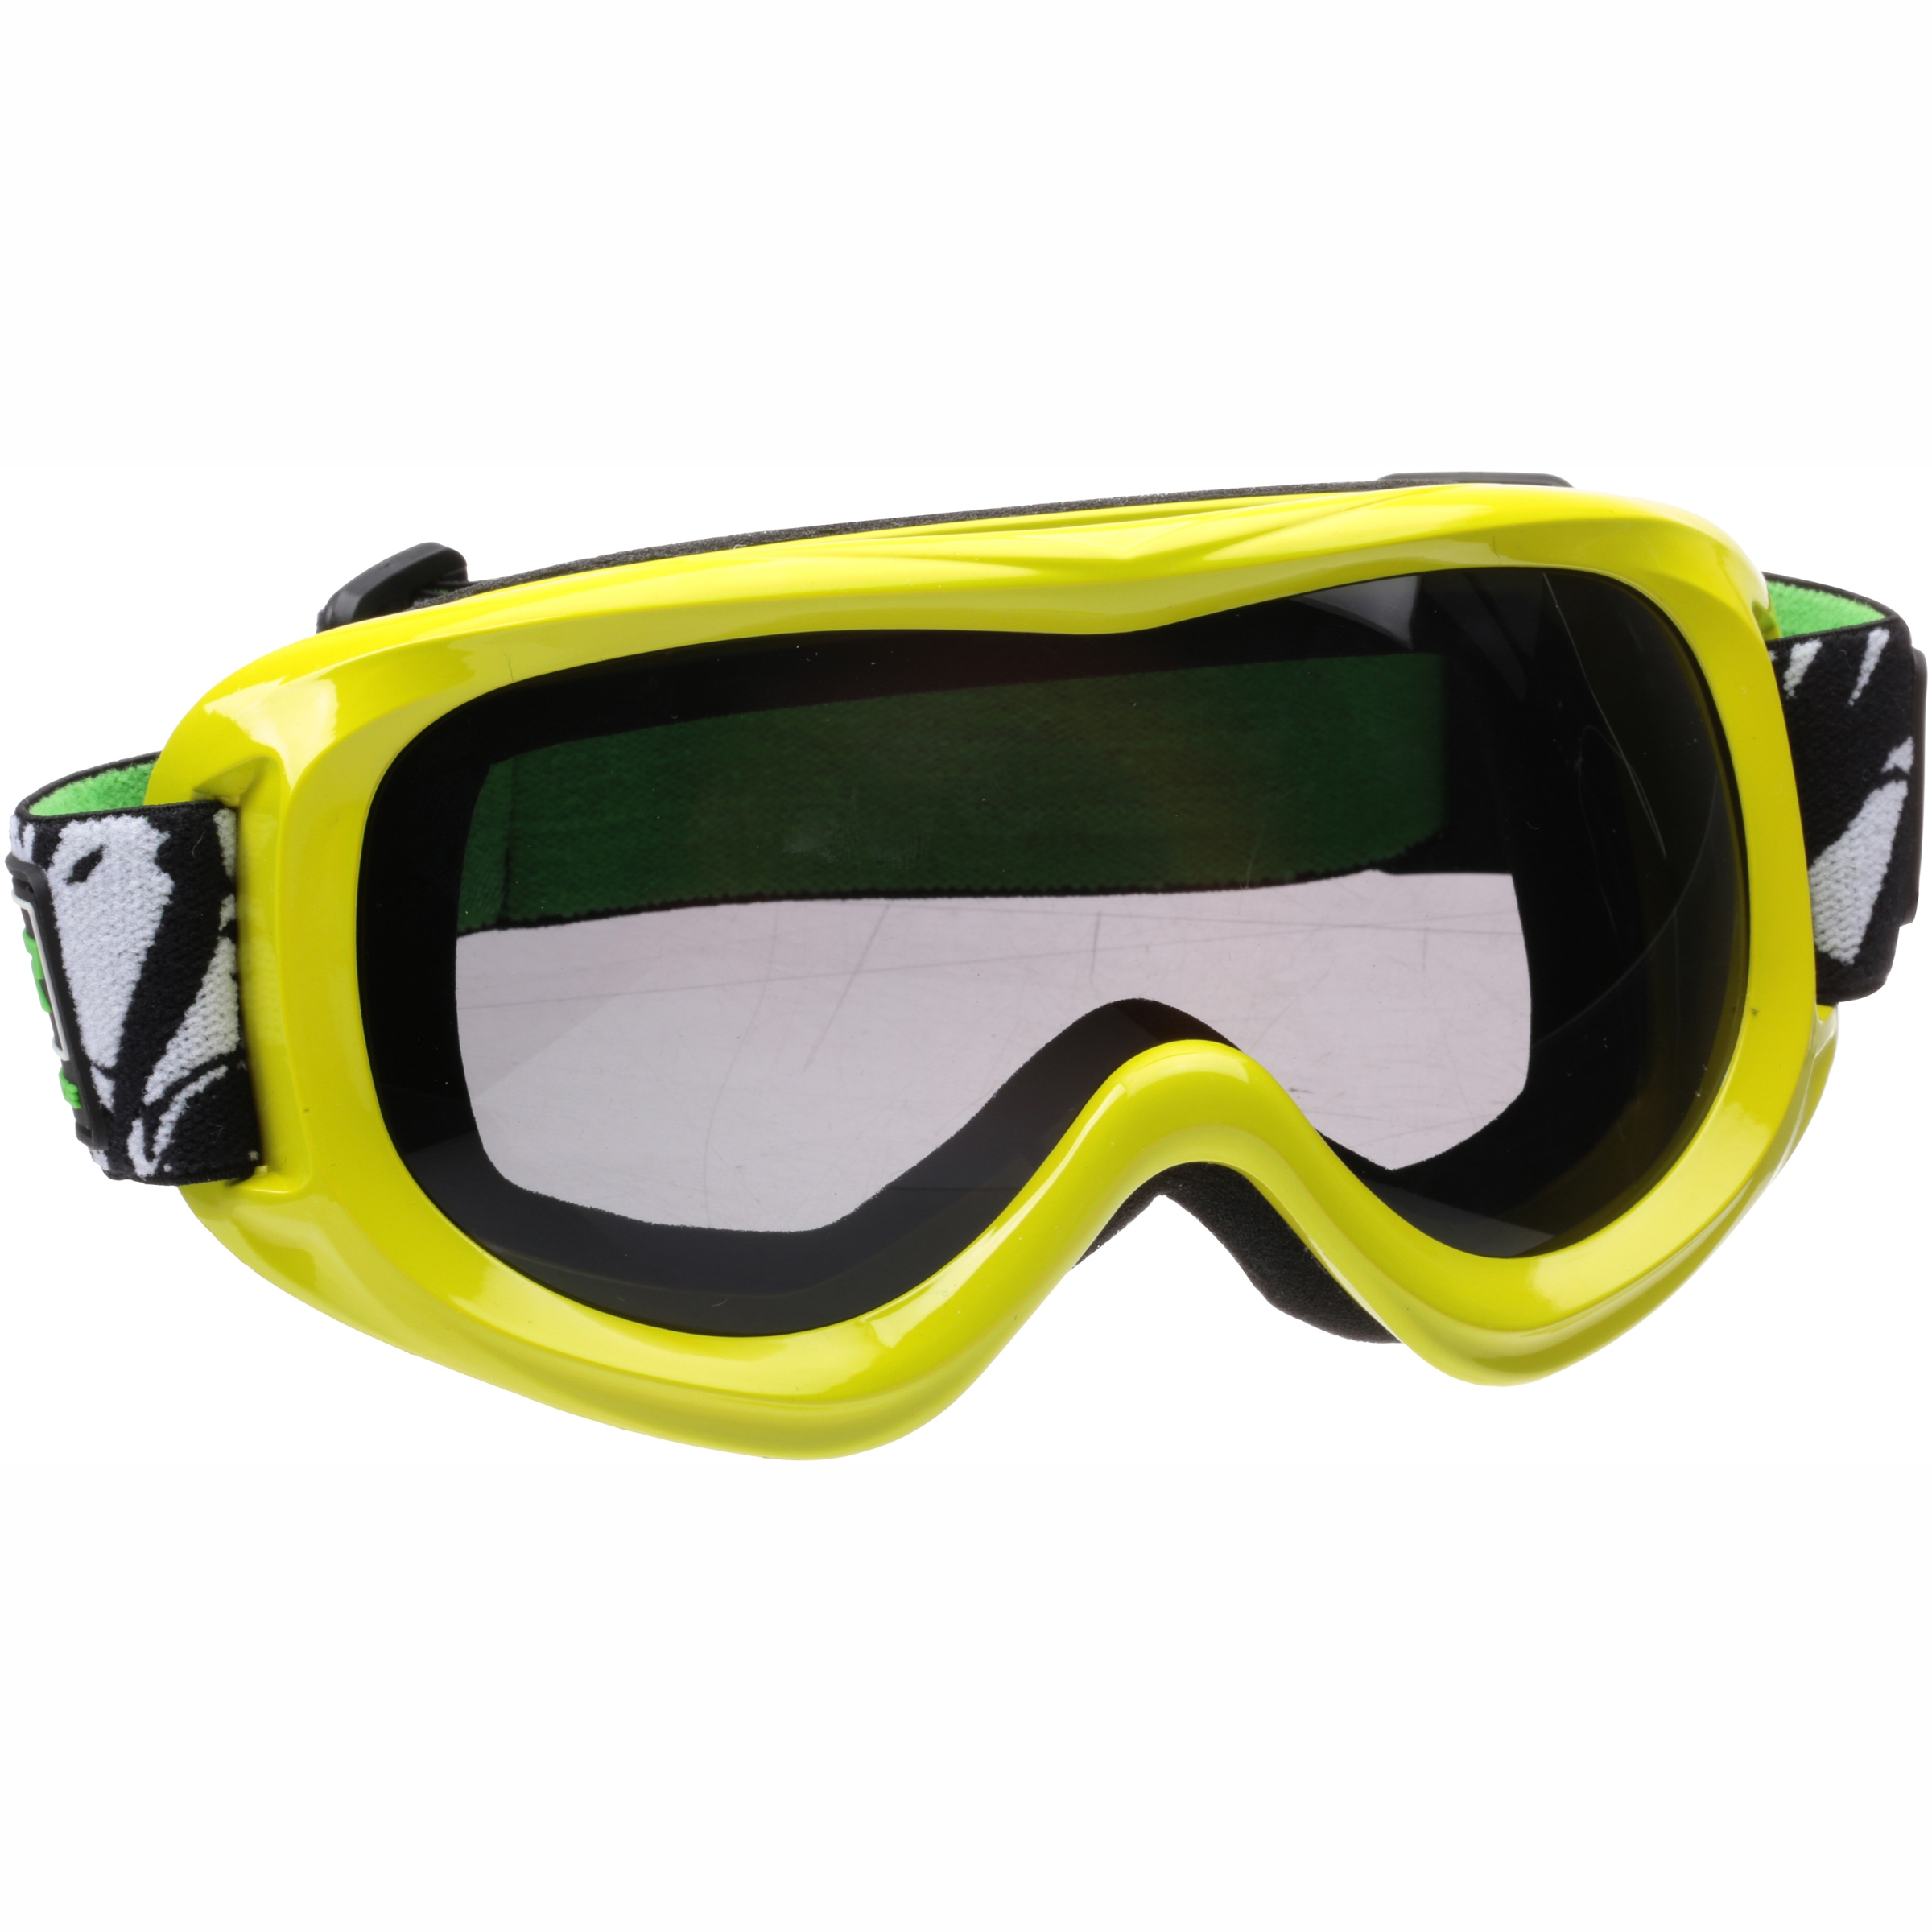 Renegade X-Large Anti-Fog High Performance Ski Goggles by Eye Ojo Corp.